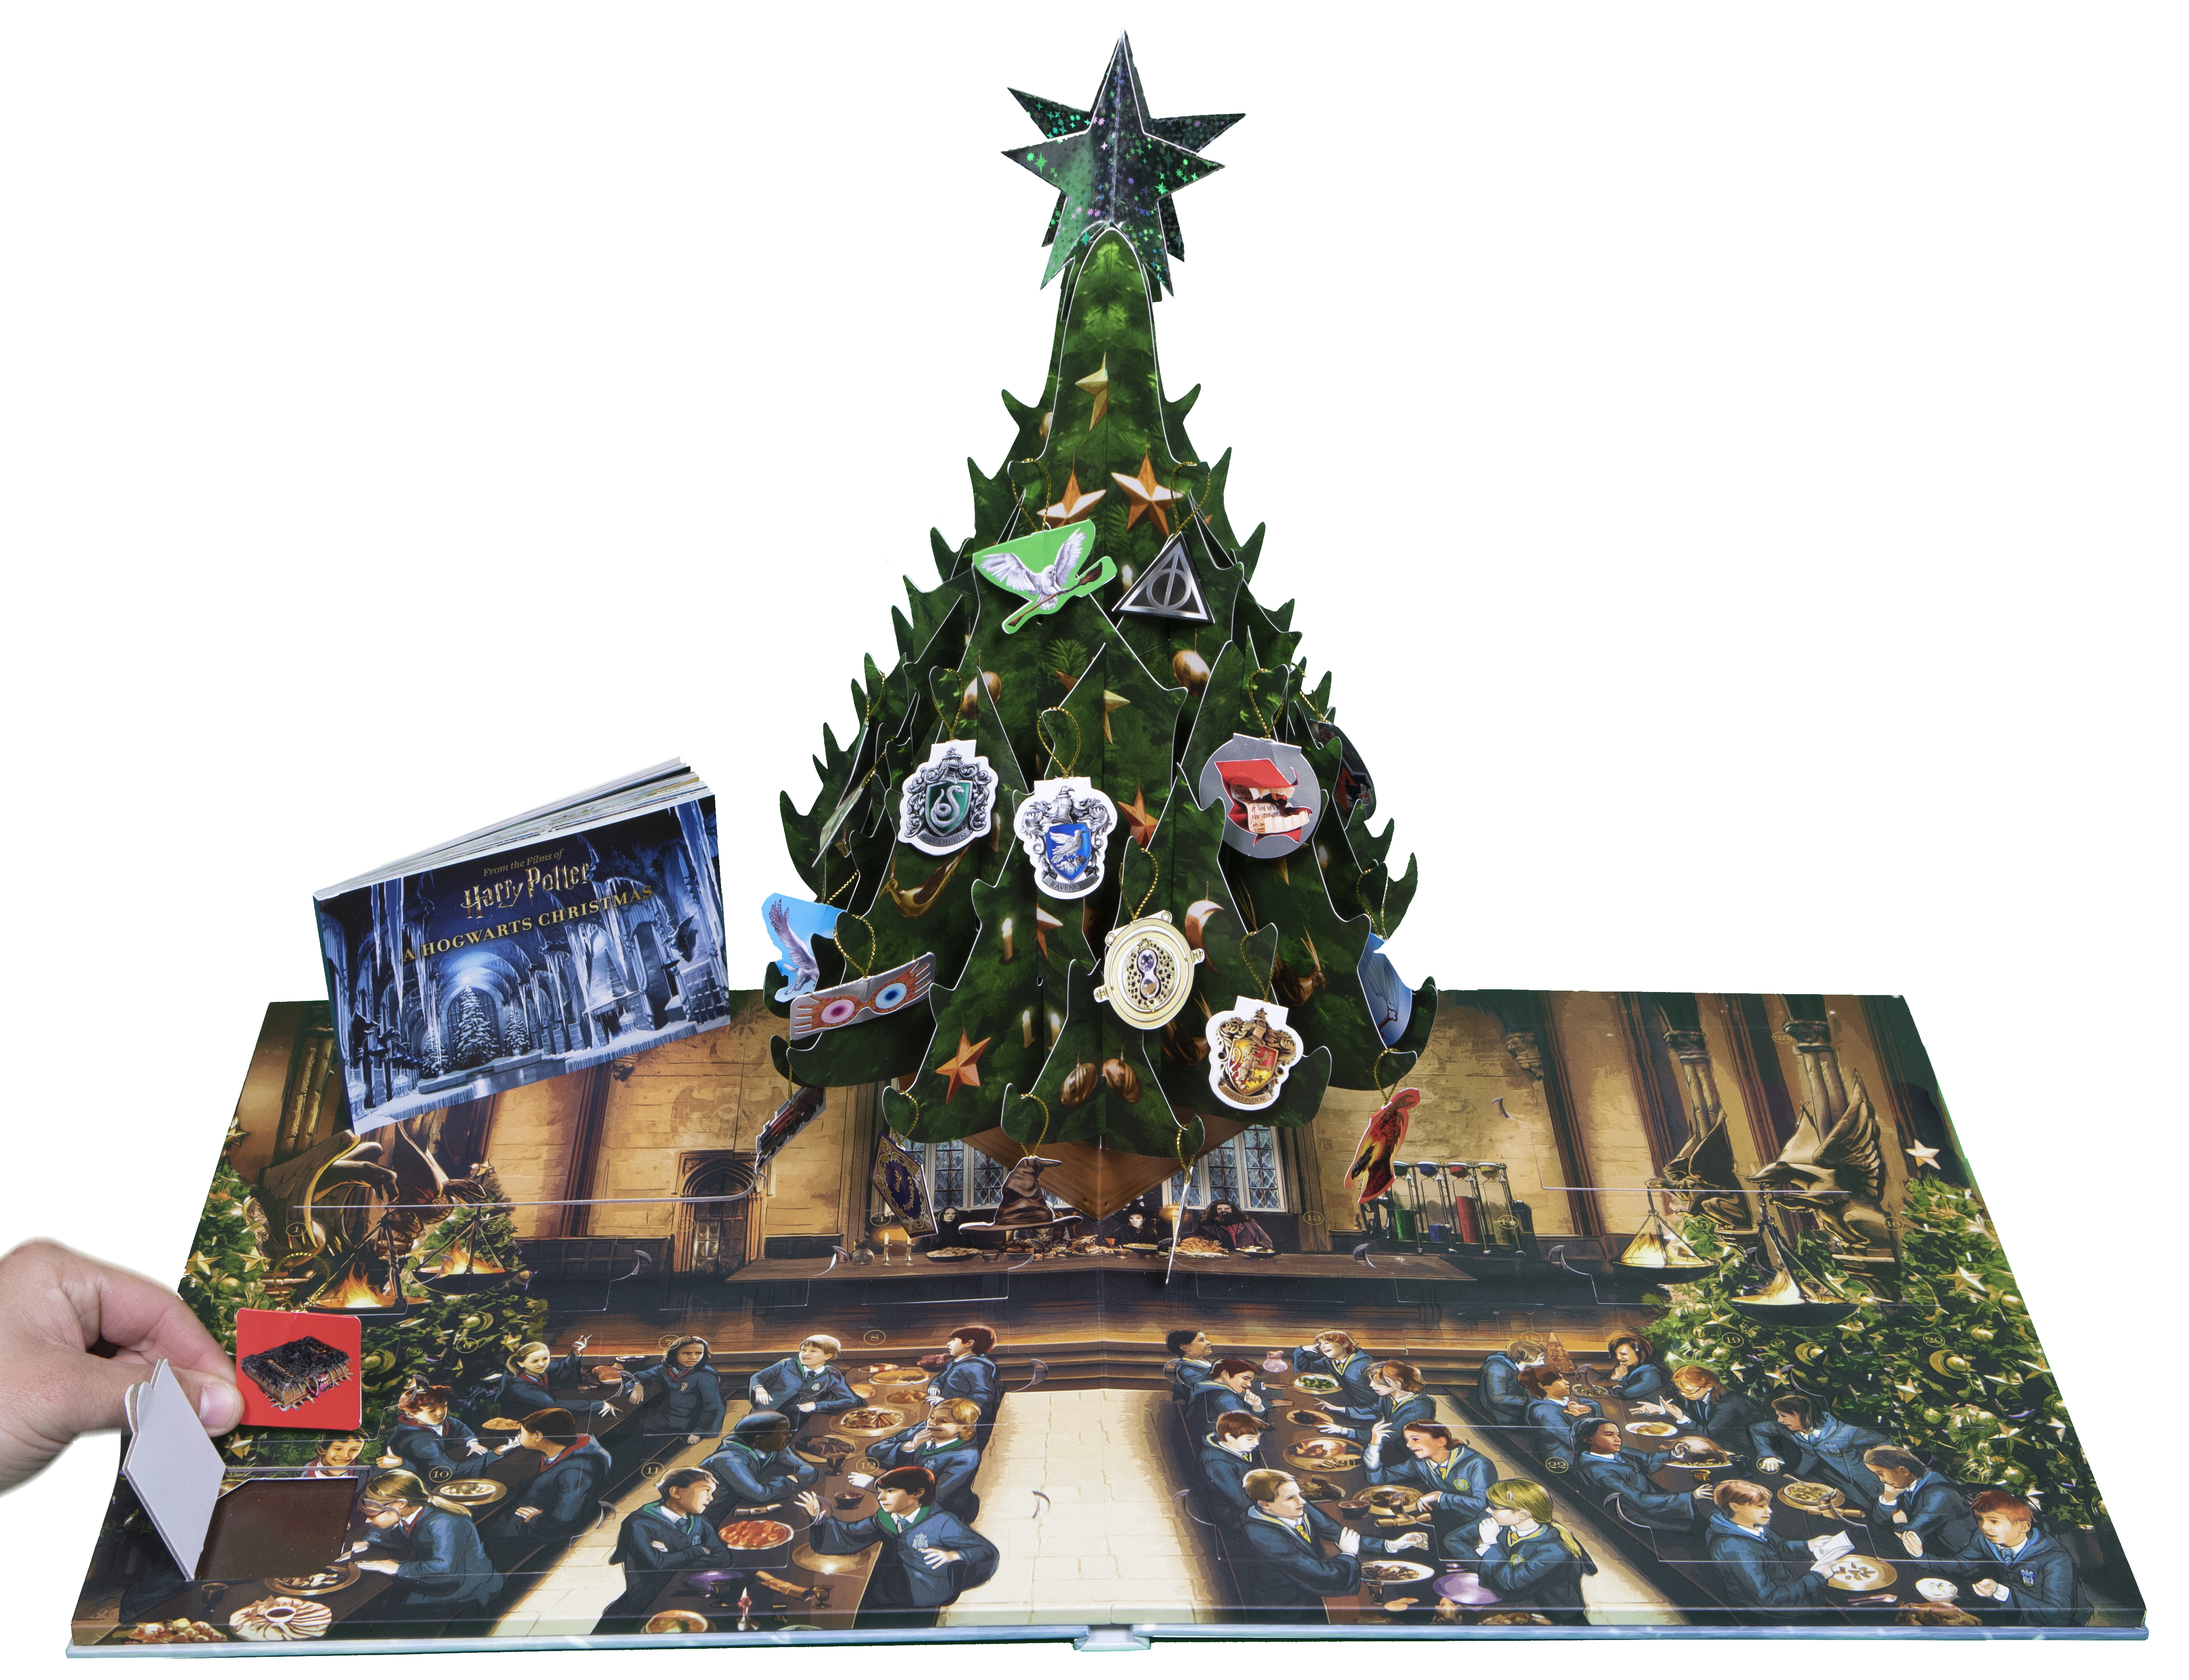 This festive pop-up book is full of removable keepsakes that can be displayed in the pop-up scene.